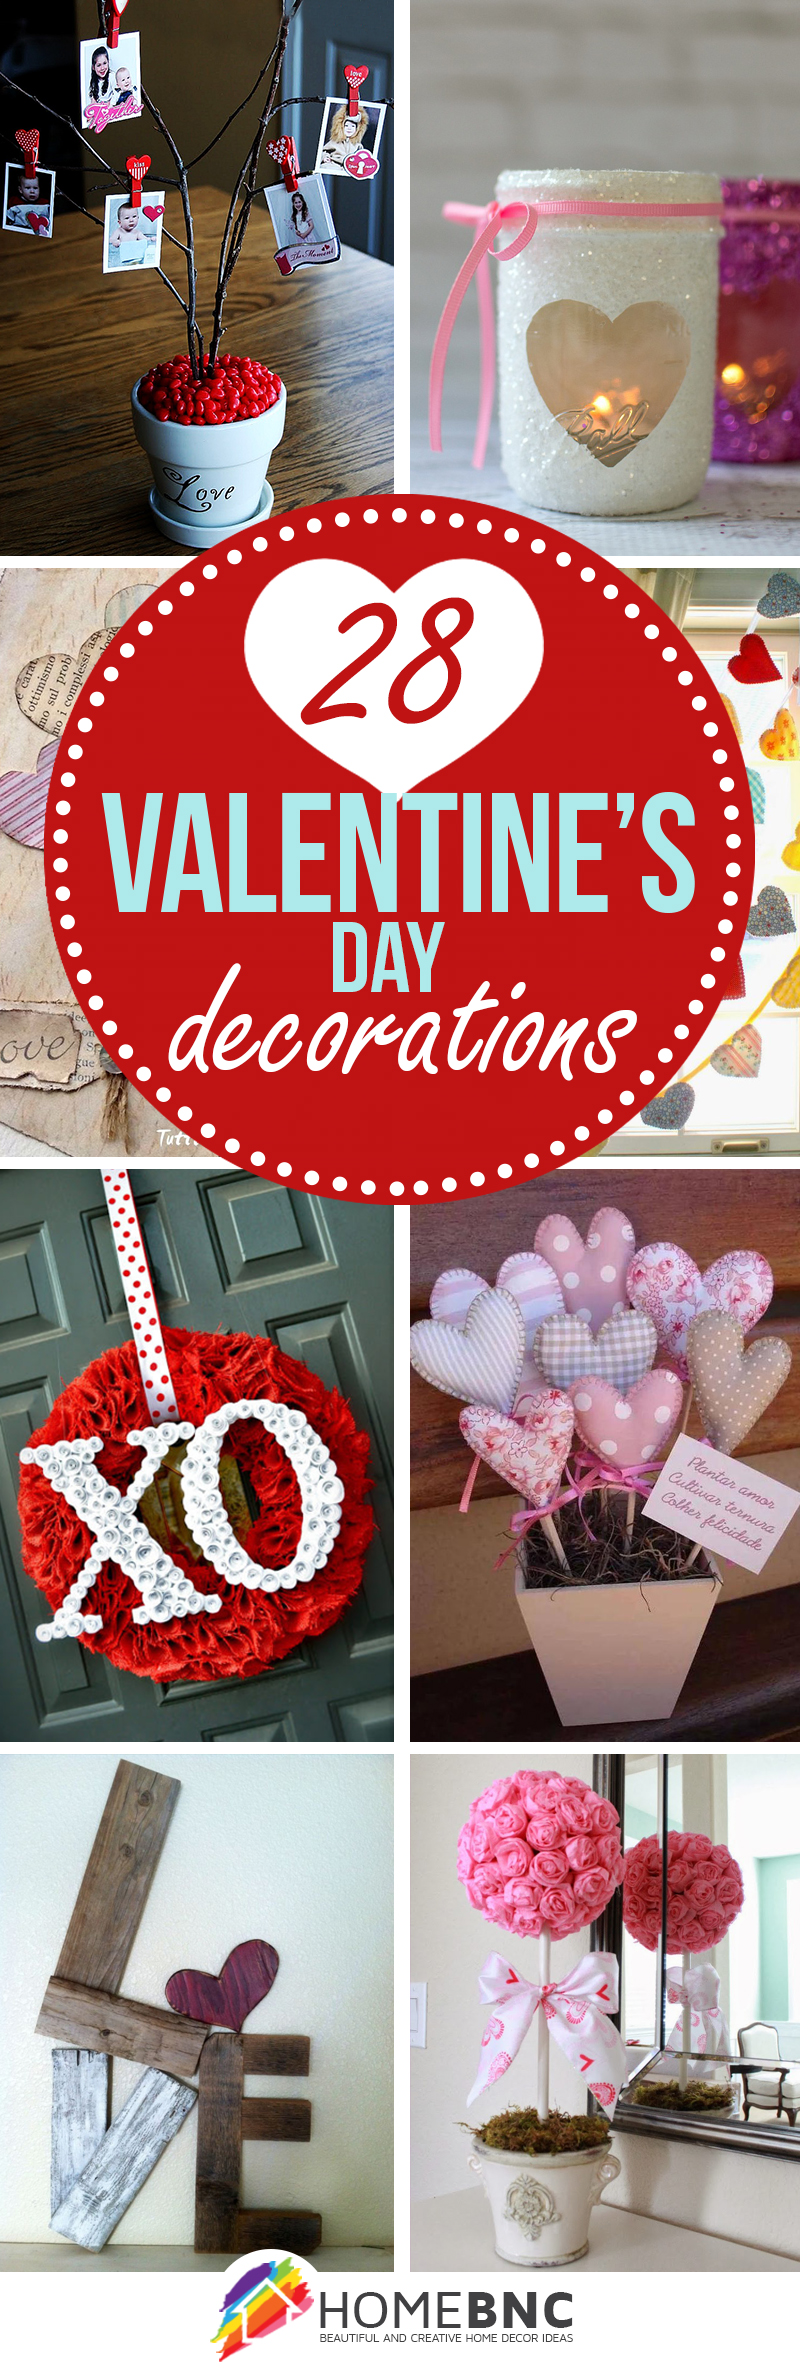 wreath red blog preschoolers valentine heart art decorations carton s valentines day for decor ted egg